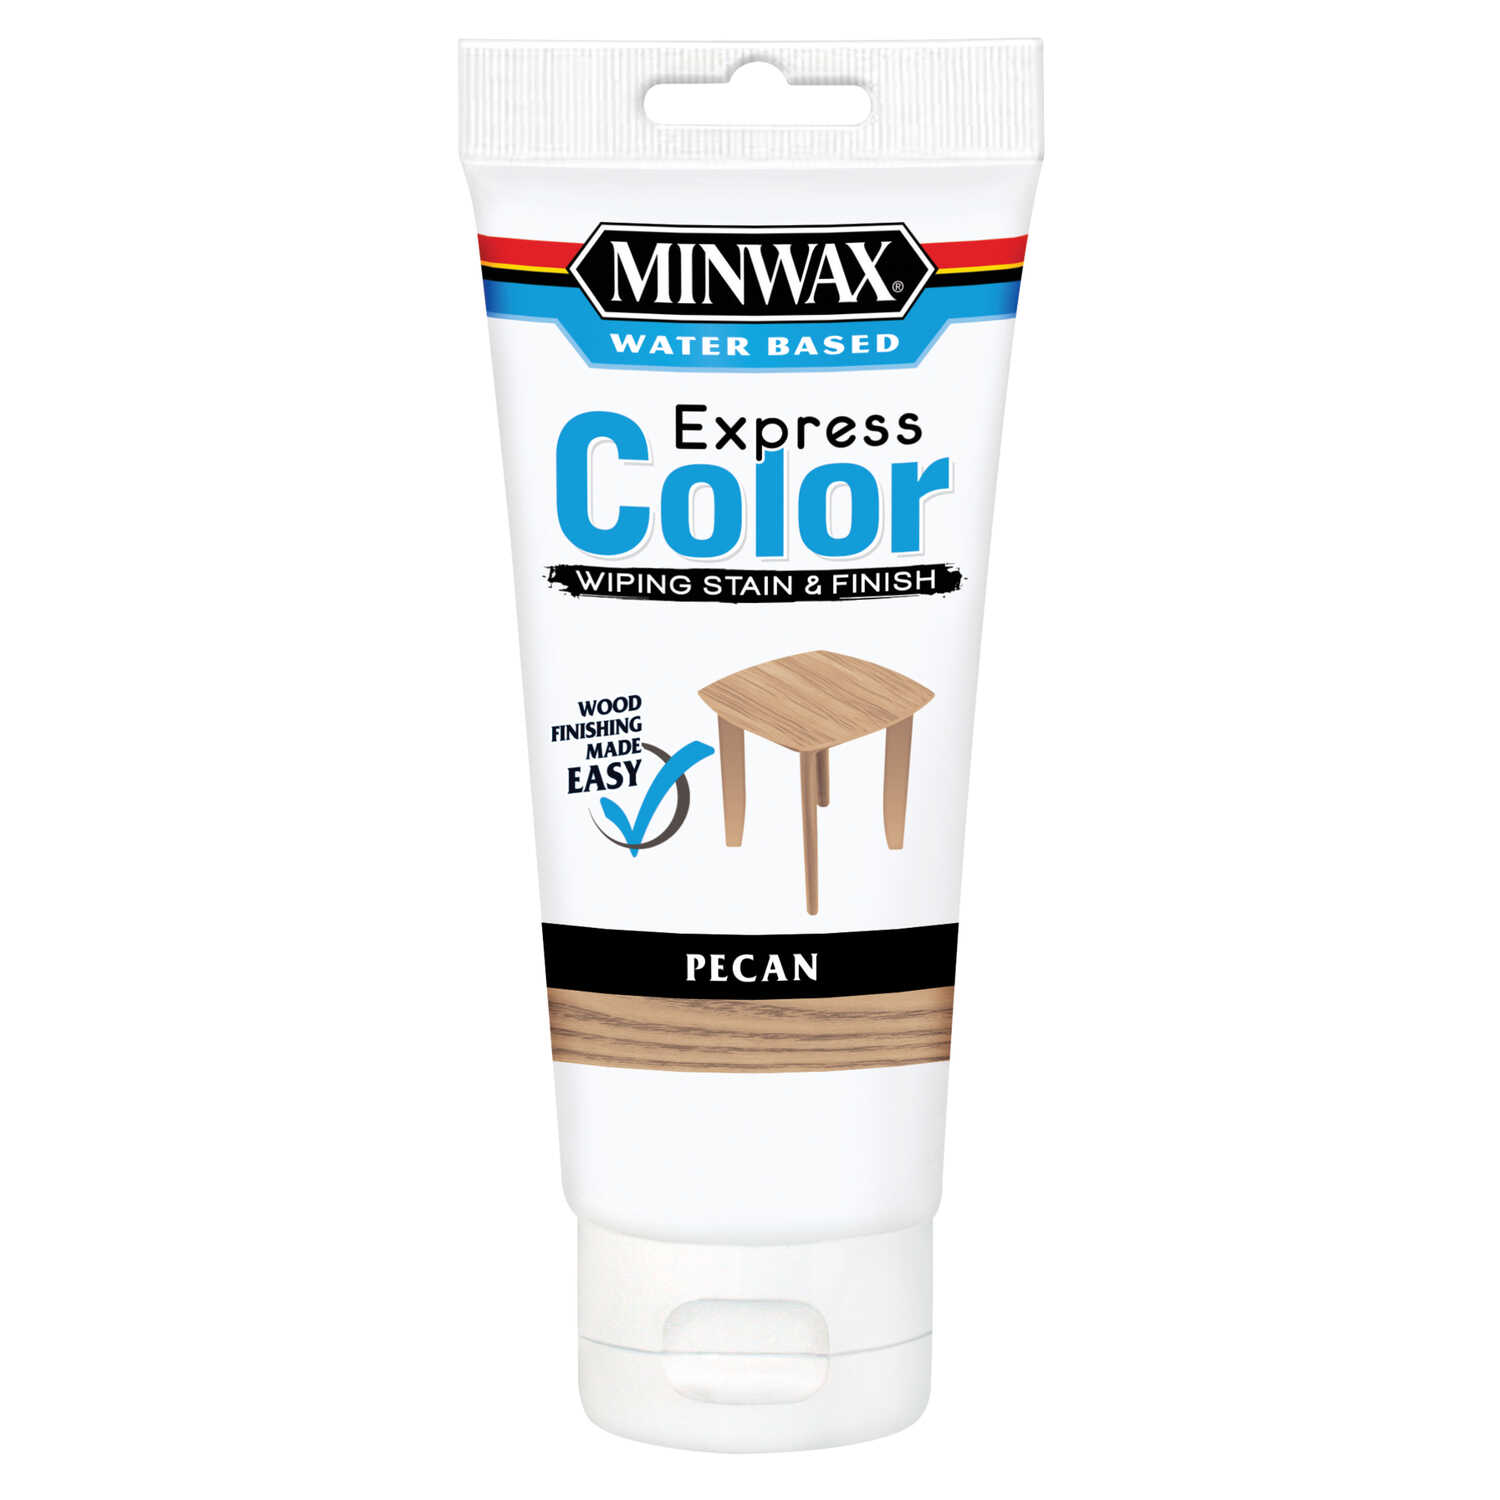 Minwax  Express Color  Semi-Transparent  Pecan  Water-Based  Acrylic  Wiping Stain and Finish  6 oz.